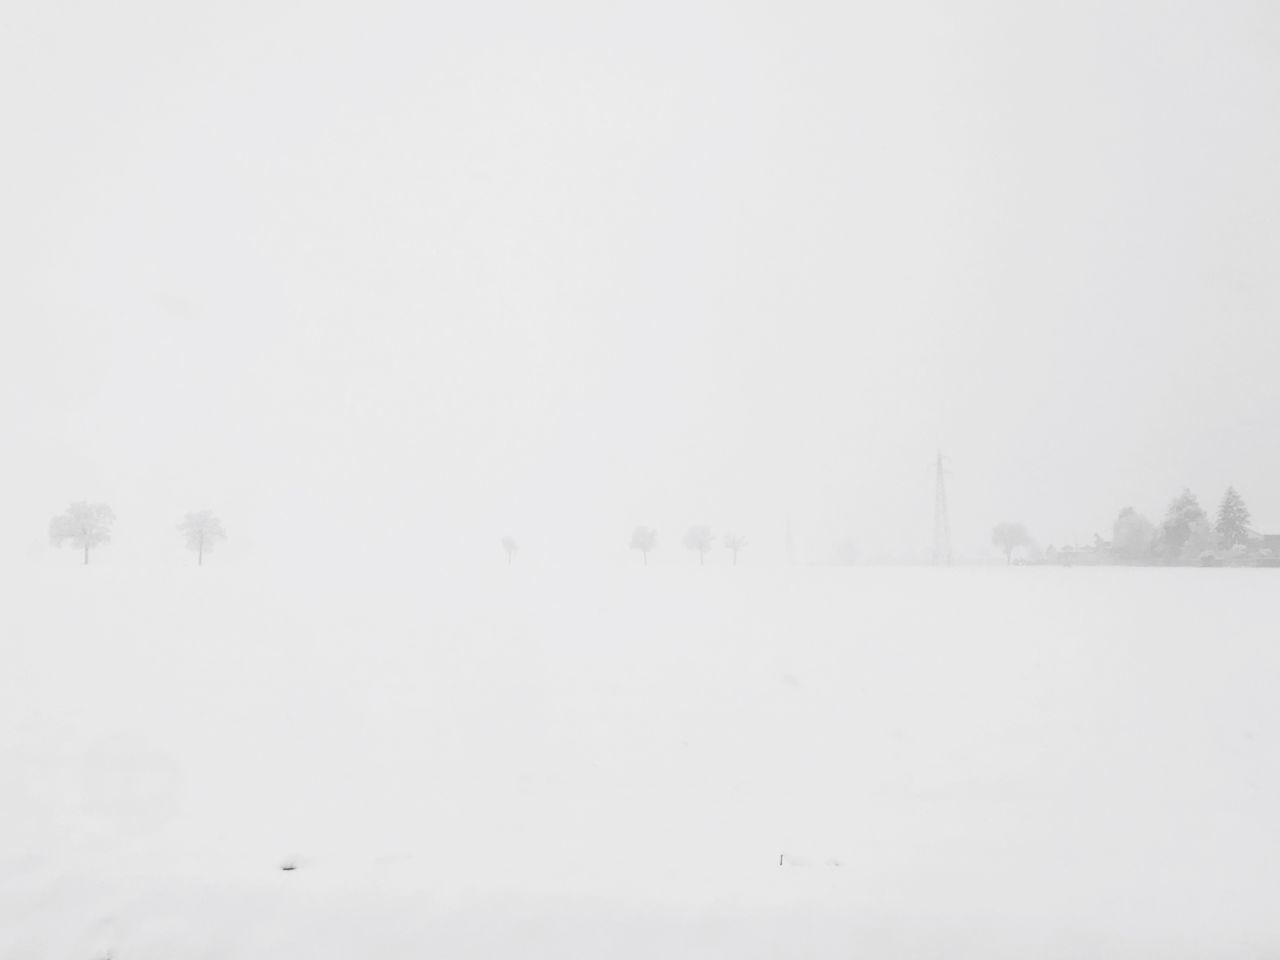 cold temperature, winter, snow, copy space, fog, beauty in nature, sky, tranquil scene, tranquility, environment, white color, nature, field, scenics - nature, no people, covering, land, landscape, non-urban scene, extreme weather, outdoors, snowing, climate, blizzard